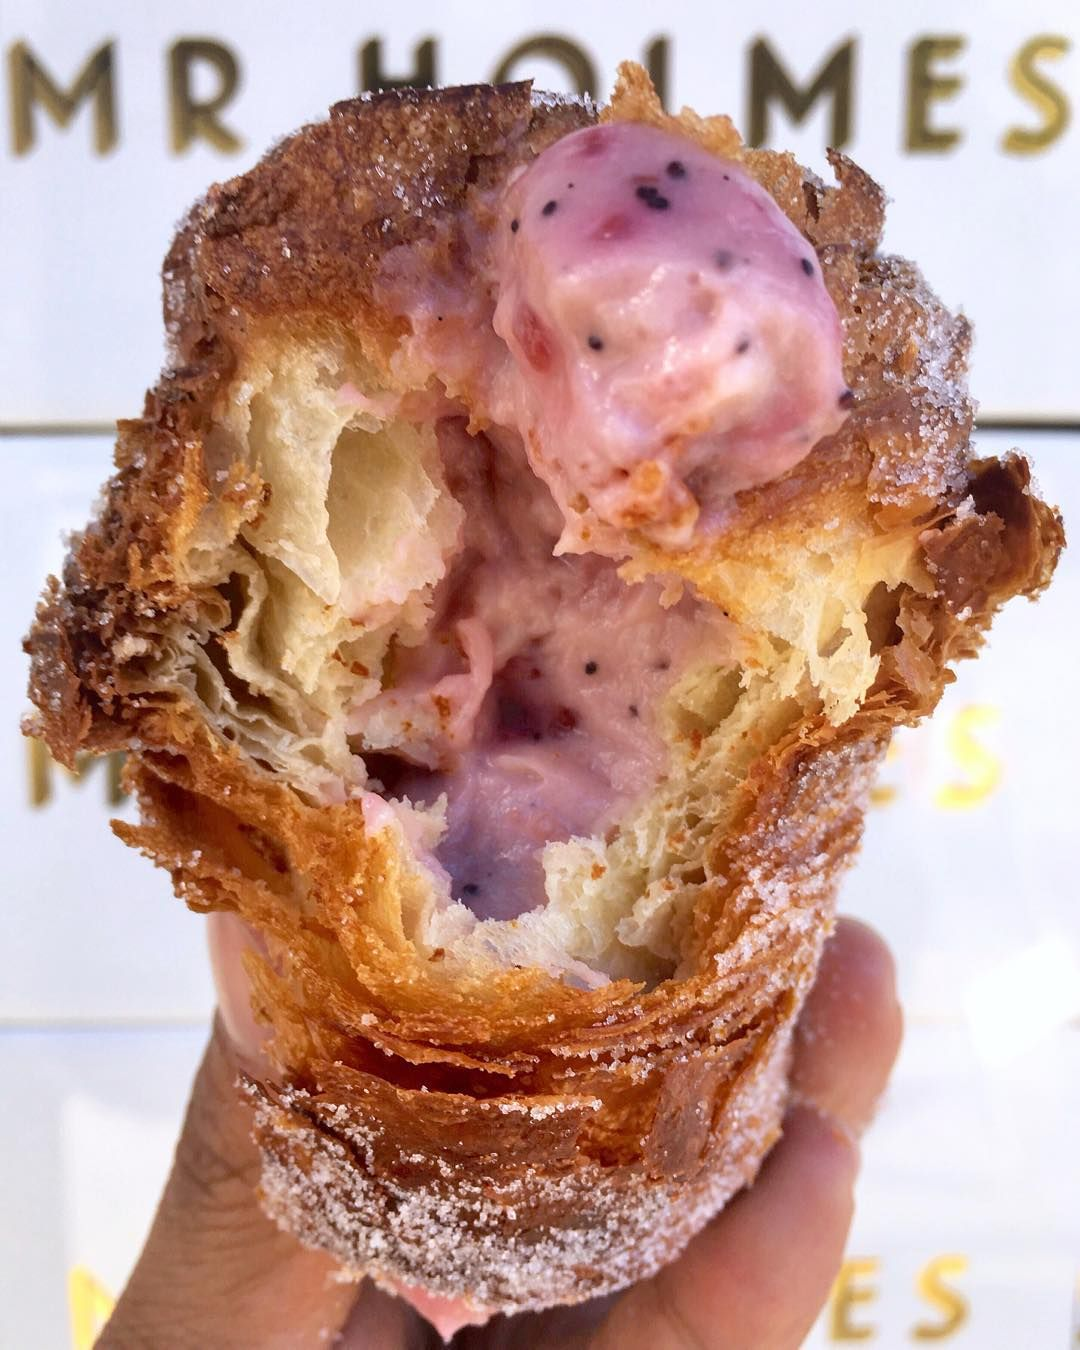 I got baked in San Francisco!  Finally got to try @mrholmesbakehouse's famous CRUFFIN (croissantmuffin) with @cyneats @jadednguyen and @charleesoumountha today!  This one's filled with raspberry vanilla and poppyseed. SO BOMB!  This is a MUST when in SF. CAN'T WAIT for this to come to LA next year!  : @dailyfoodfeed : @mrholmesbakehouse #: #dailyfoodfeed : Snapchat dailyfoodfeed  TAG YOUR FRIENDS  by dailyfoodfeed